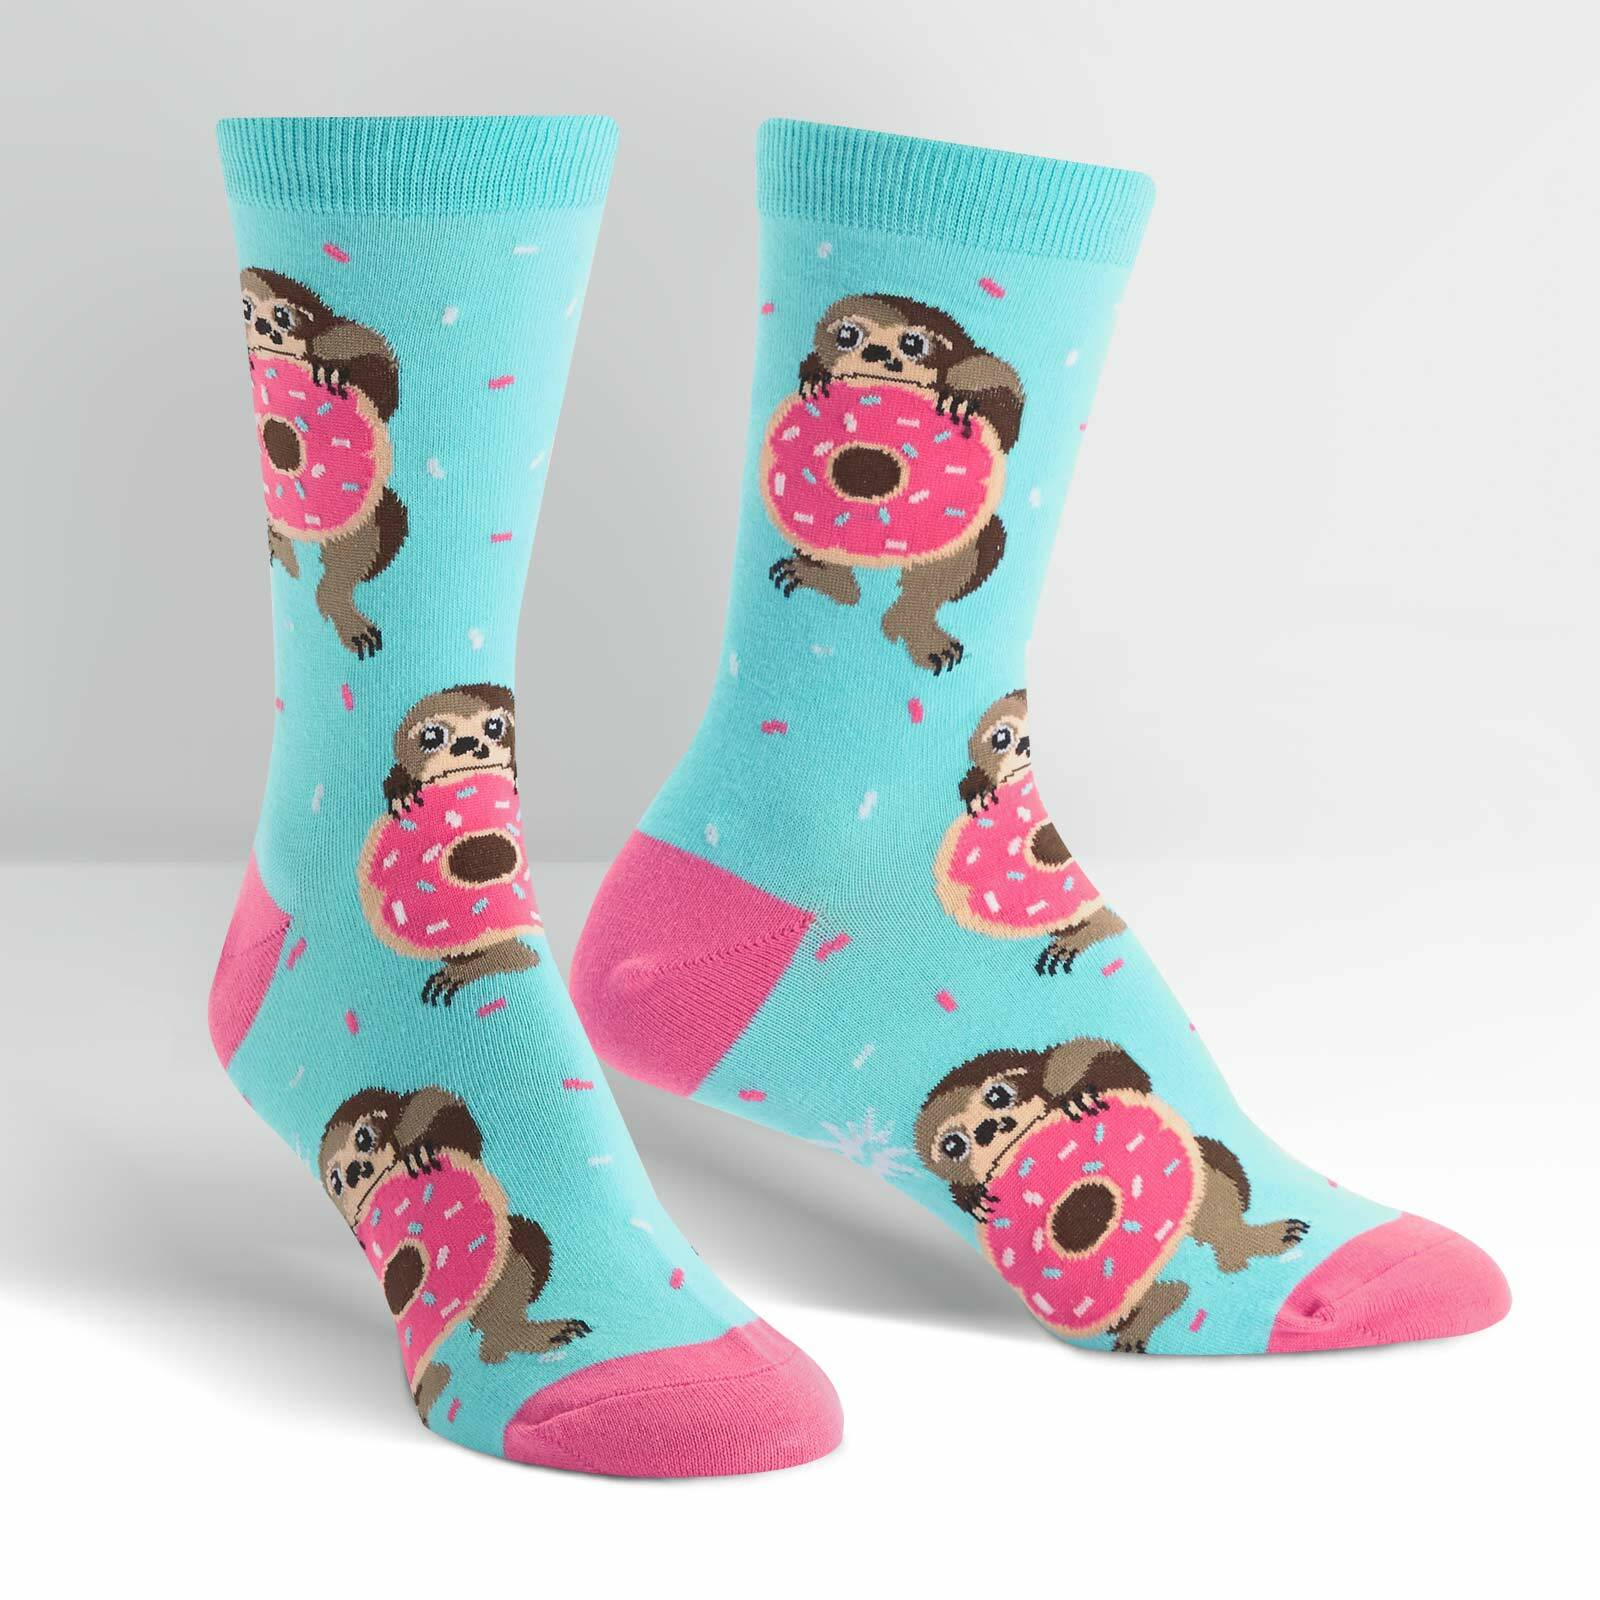 Light Blue variant of Snackin' Sloth - Sloth Crew Socks Blue - Women's